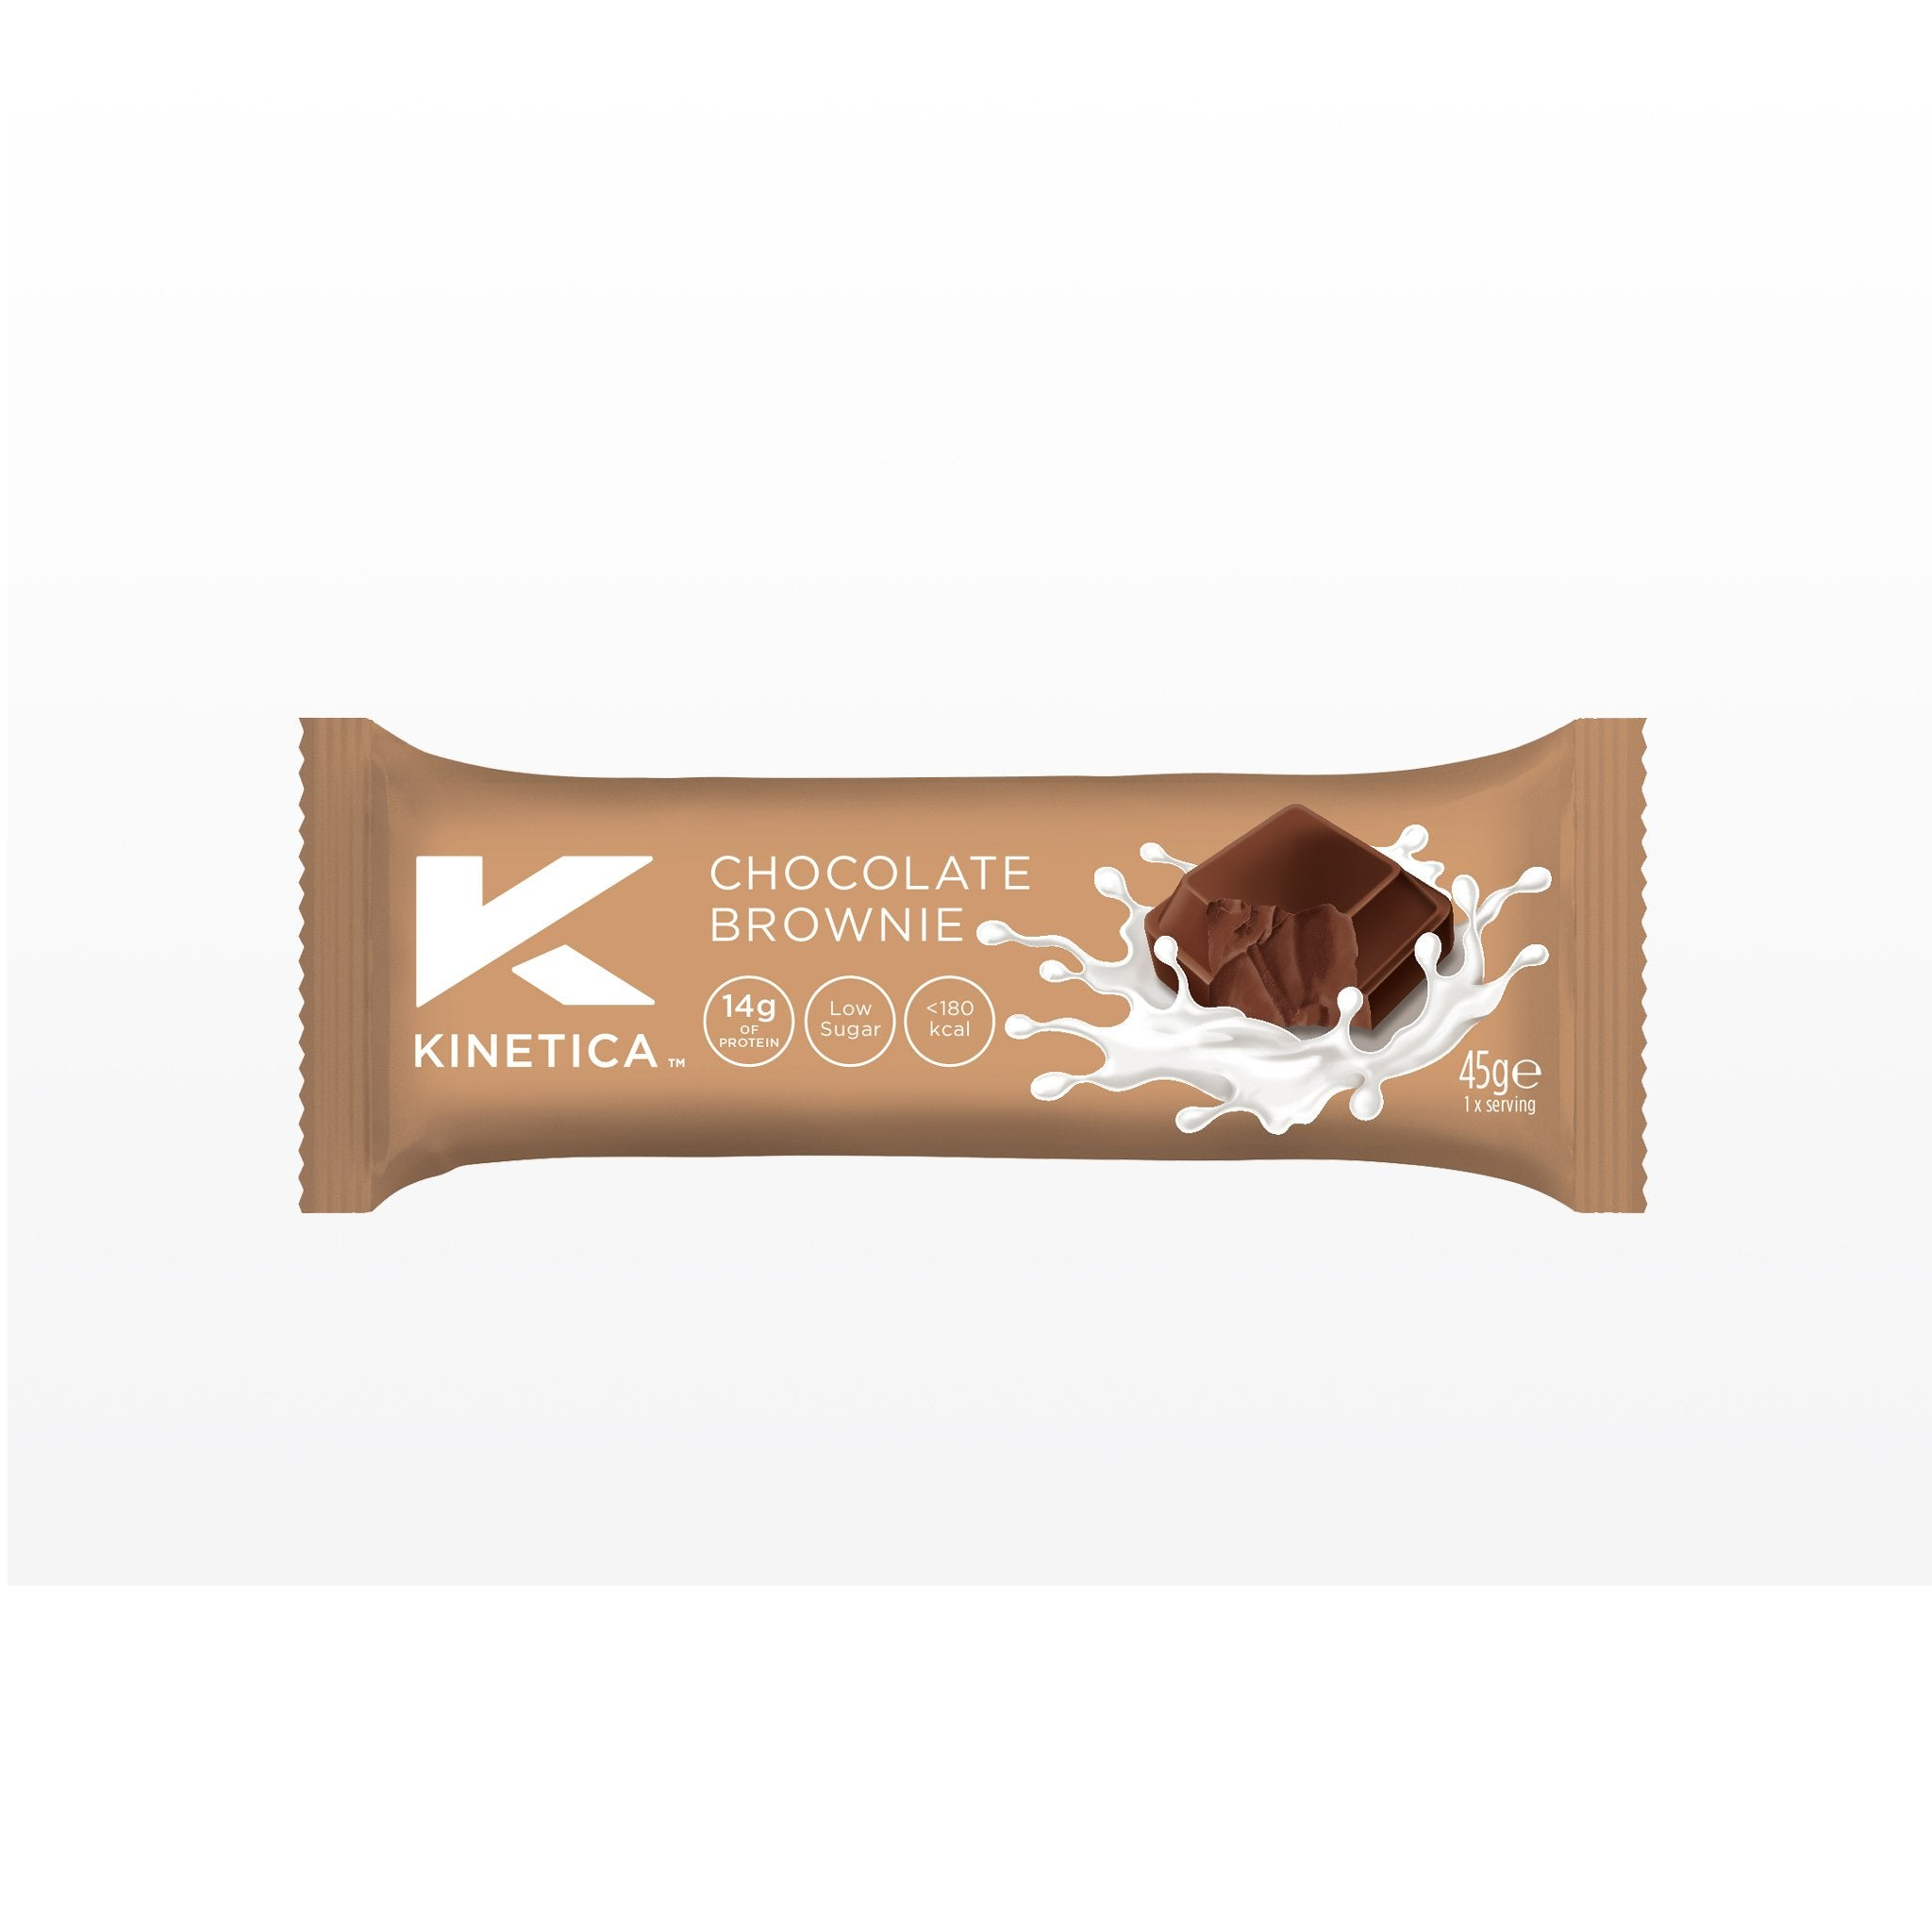 Kinetica protein bar, chocolate brownie protein bar, high protein, 14g protein.